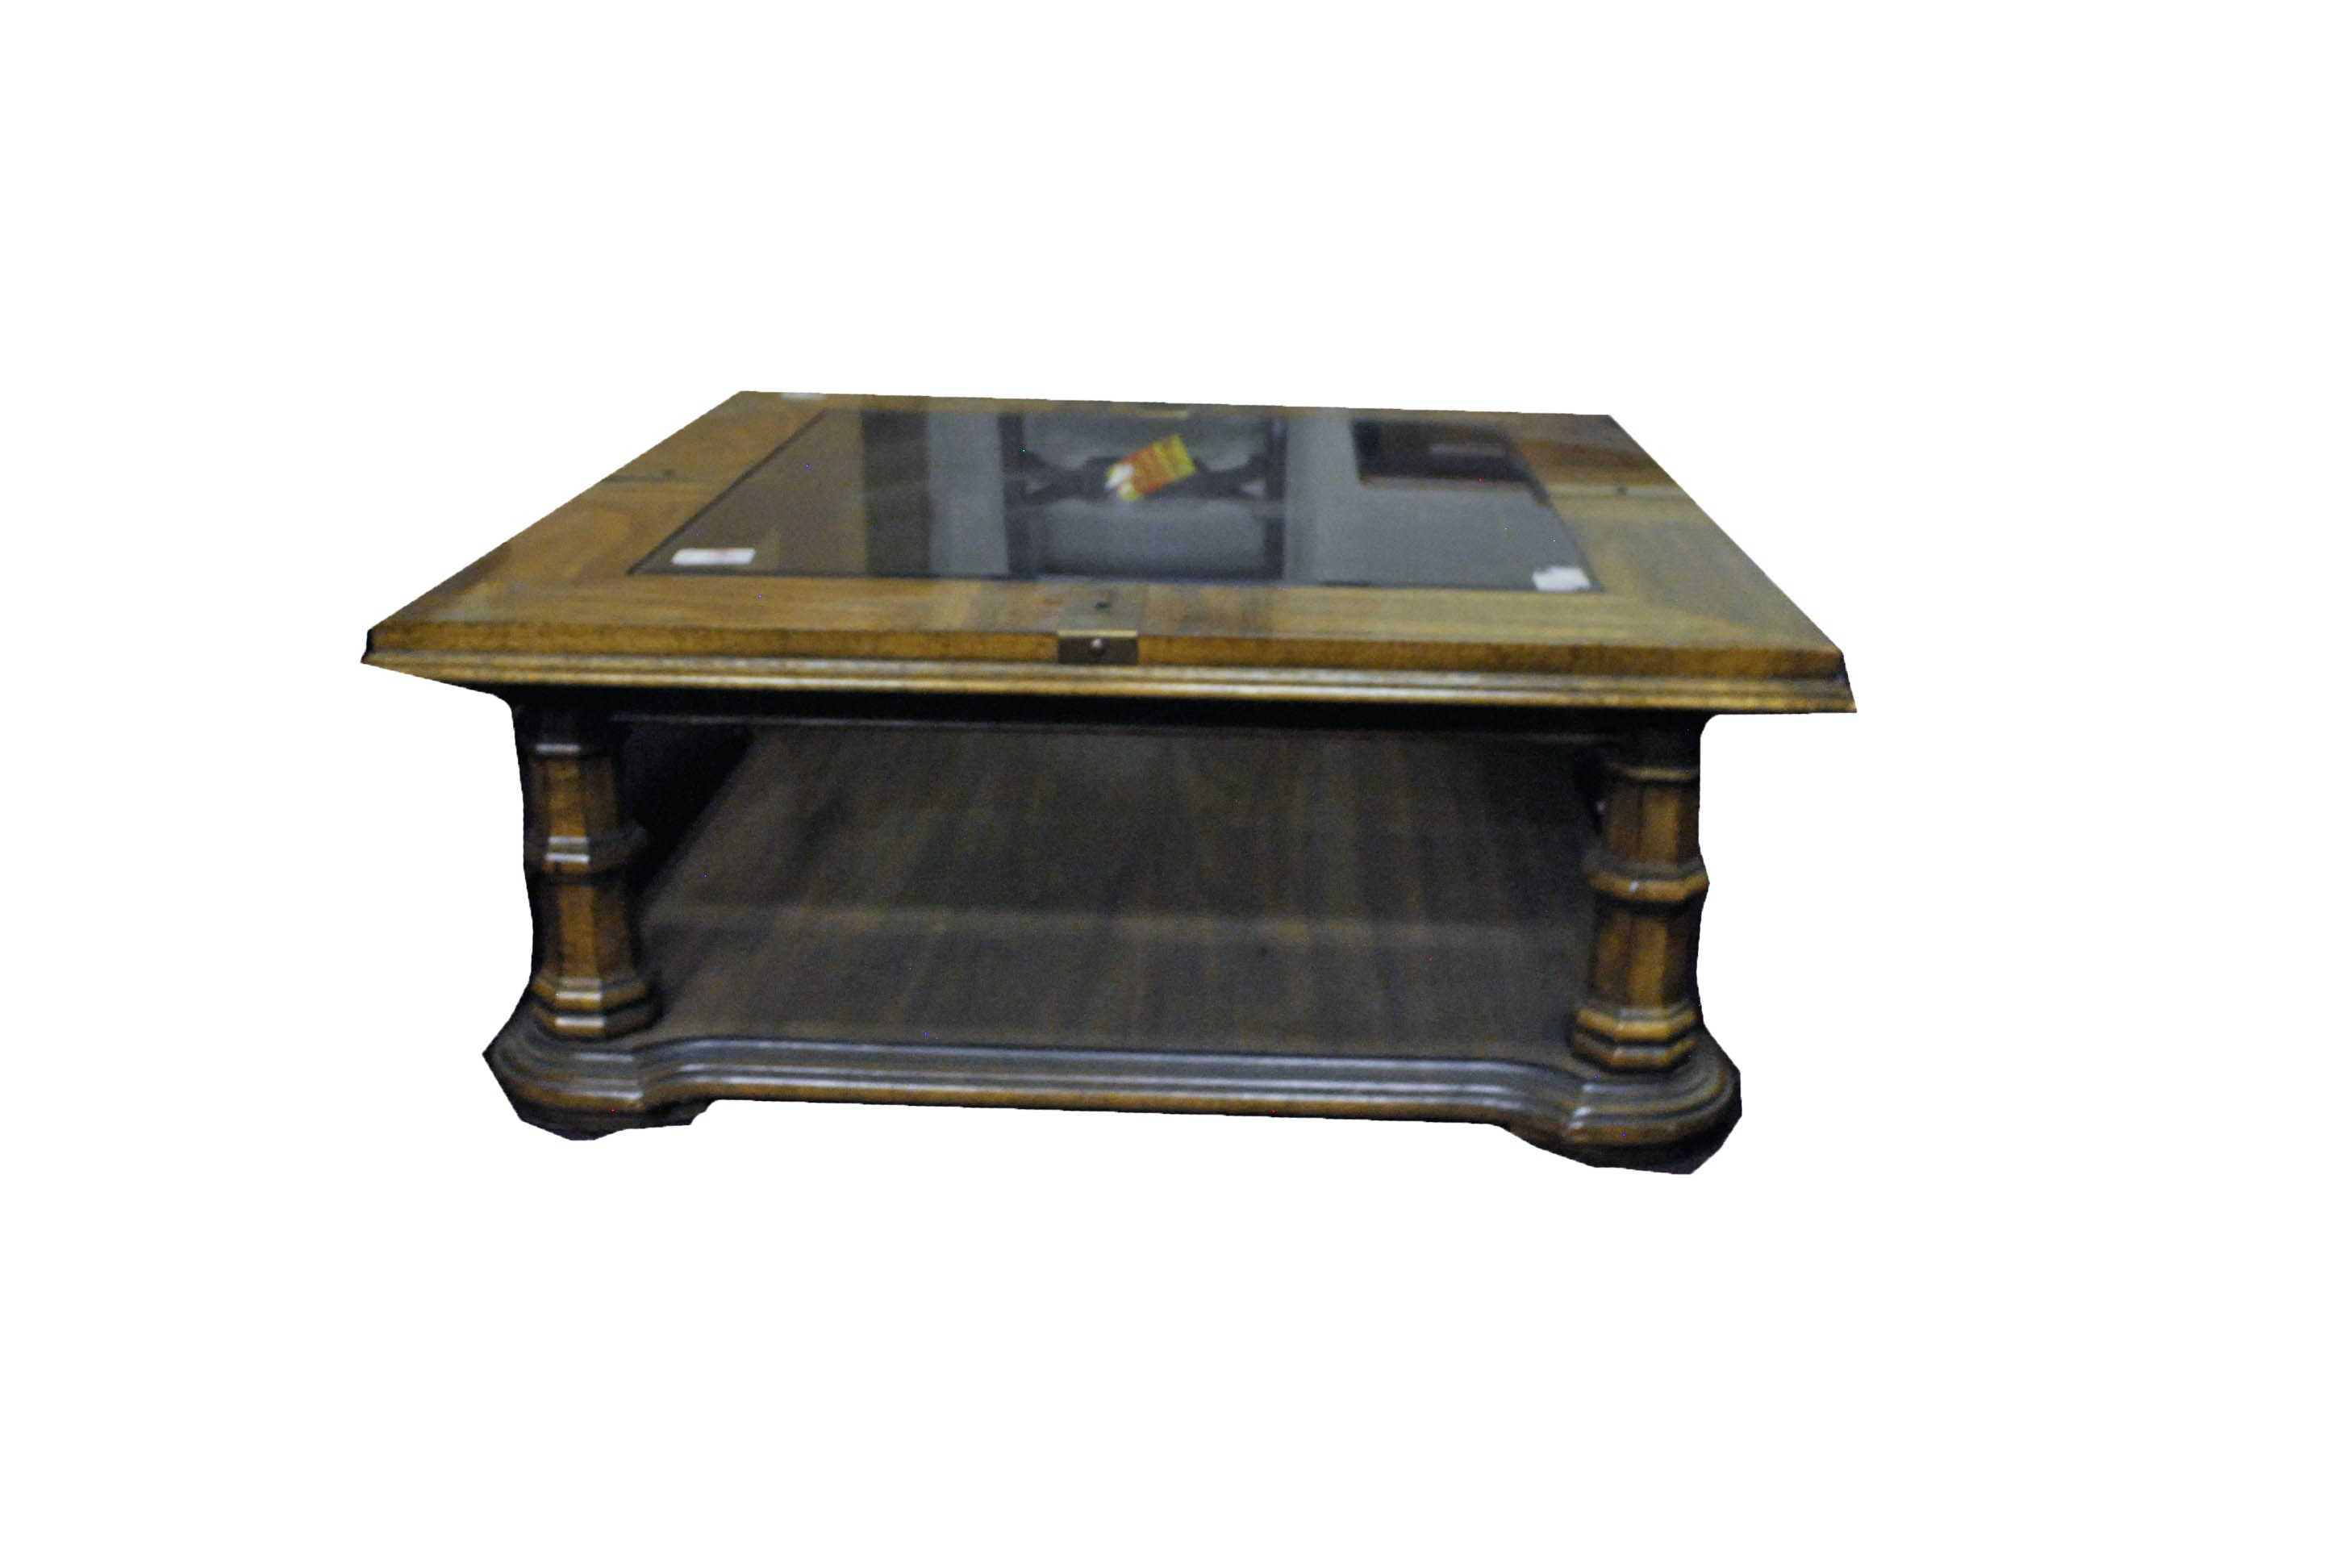 Square Wooden Coffee Table with a Glass Surface